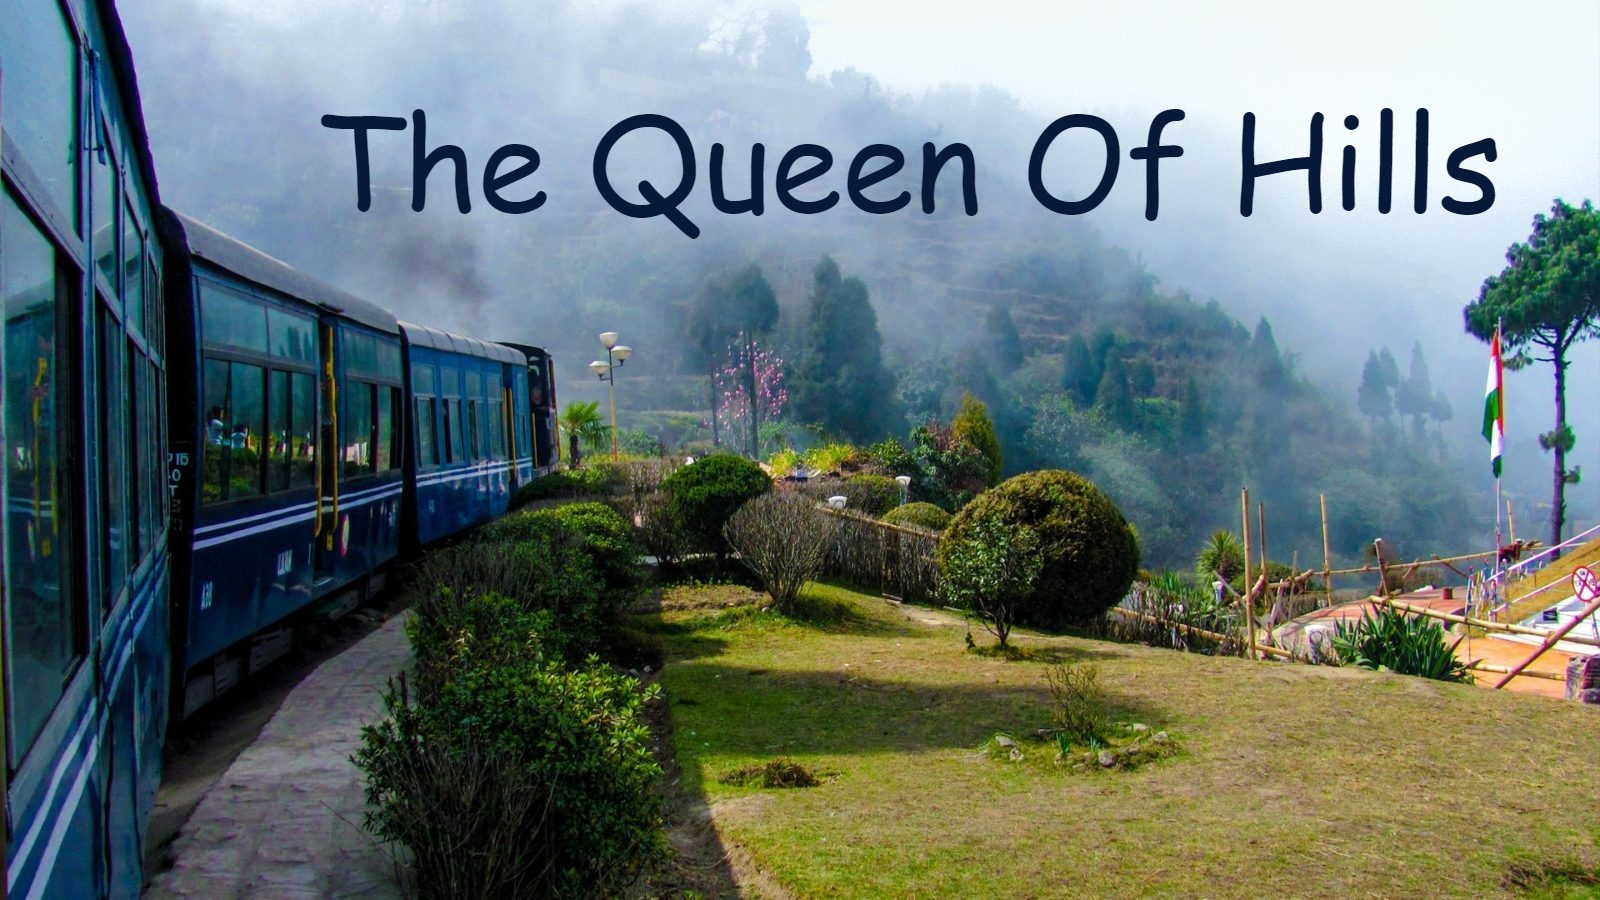 The Queen of Hills is the nickname of Darjeeling